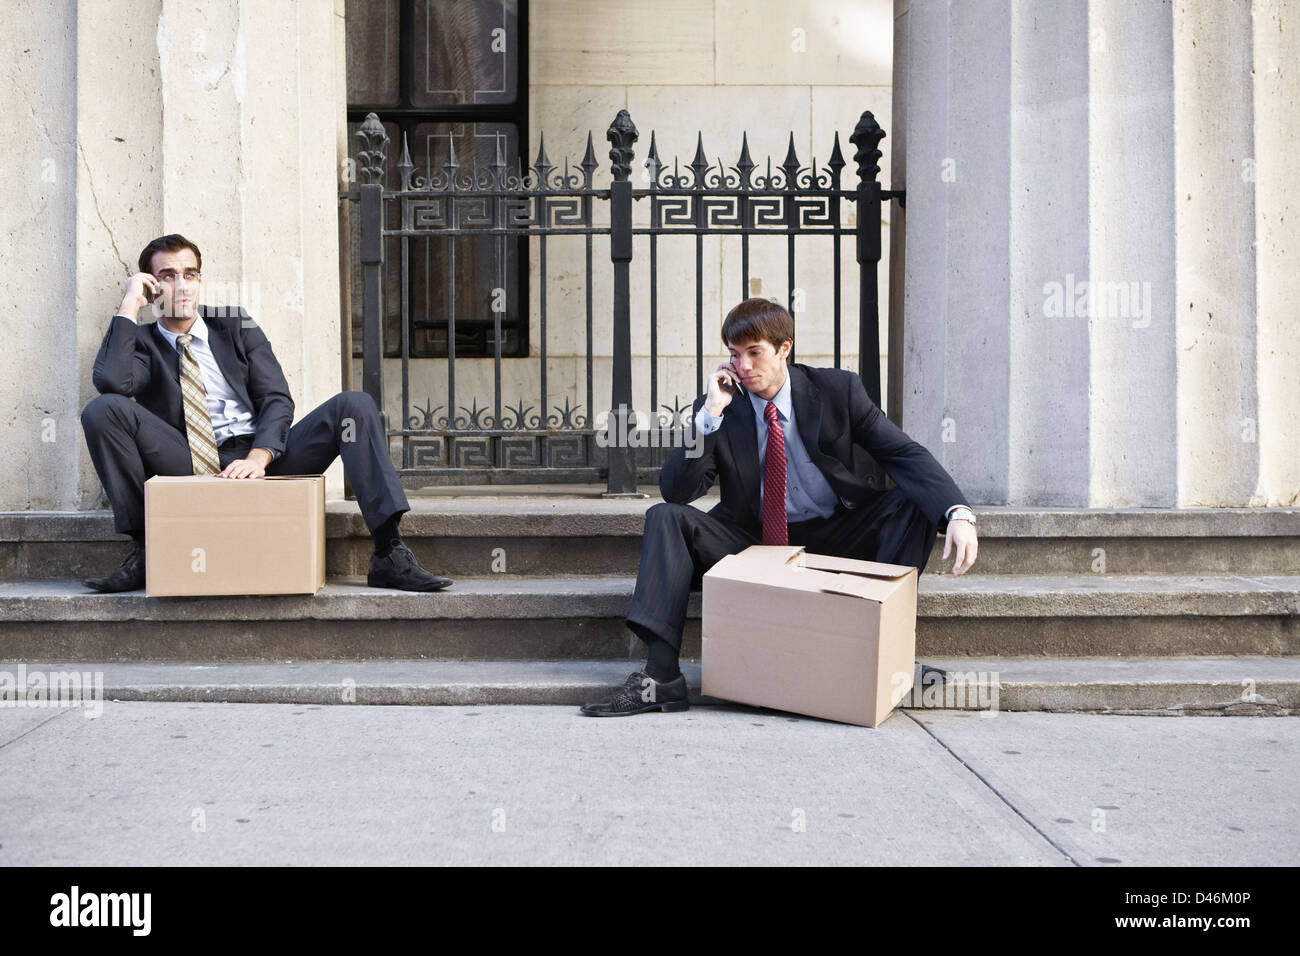 Two wall street men made redundant, carrying boxes of personal effects from work. - Stock Image